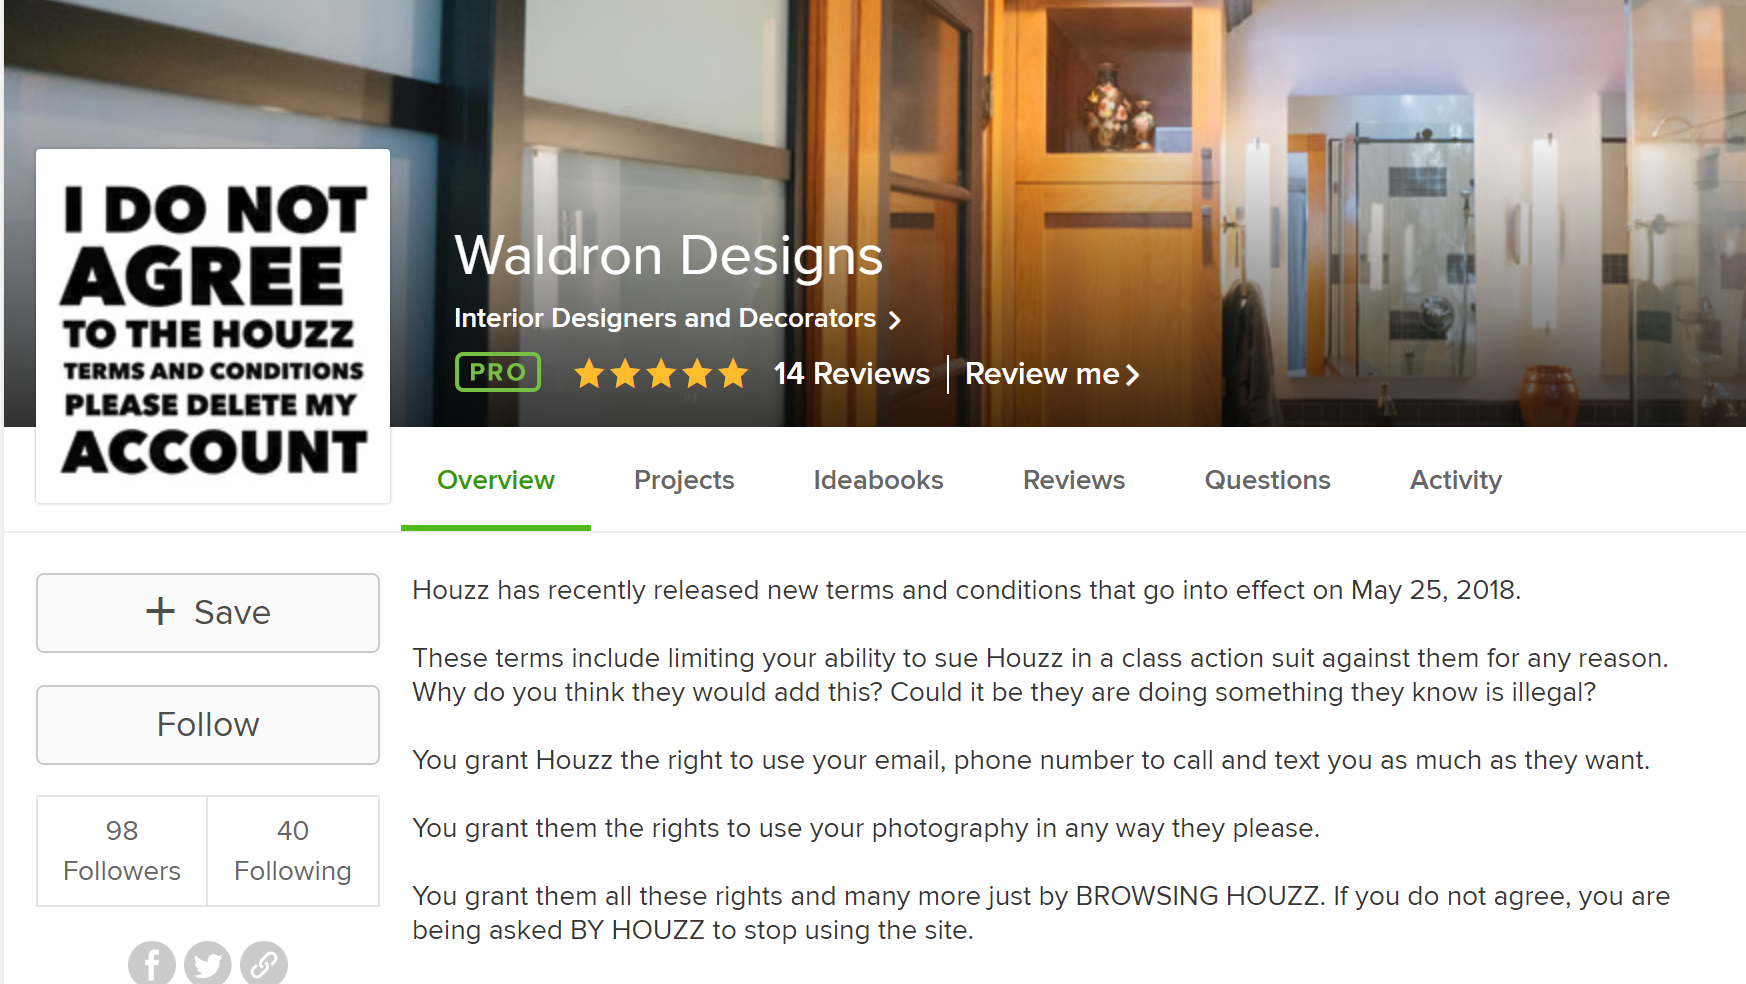 While many designers have removed their Houzz accounts, we are using ours to share the truth about this company.